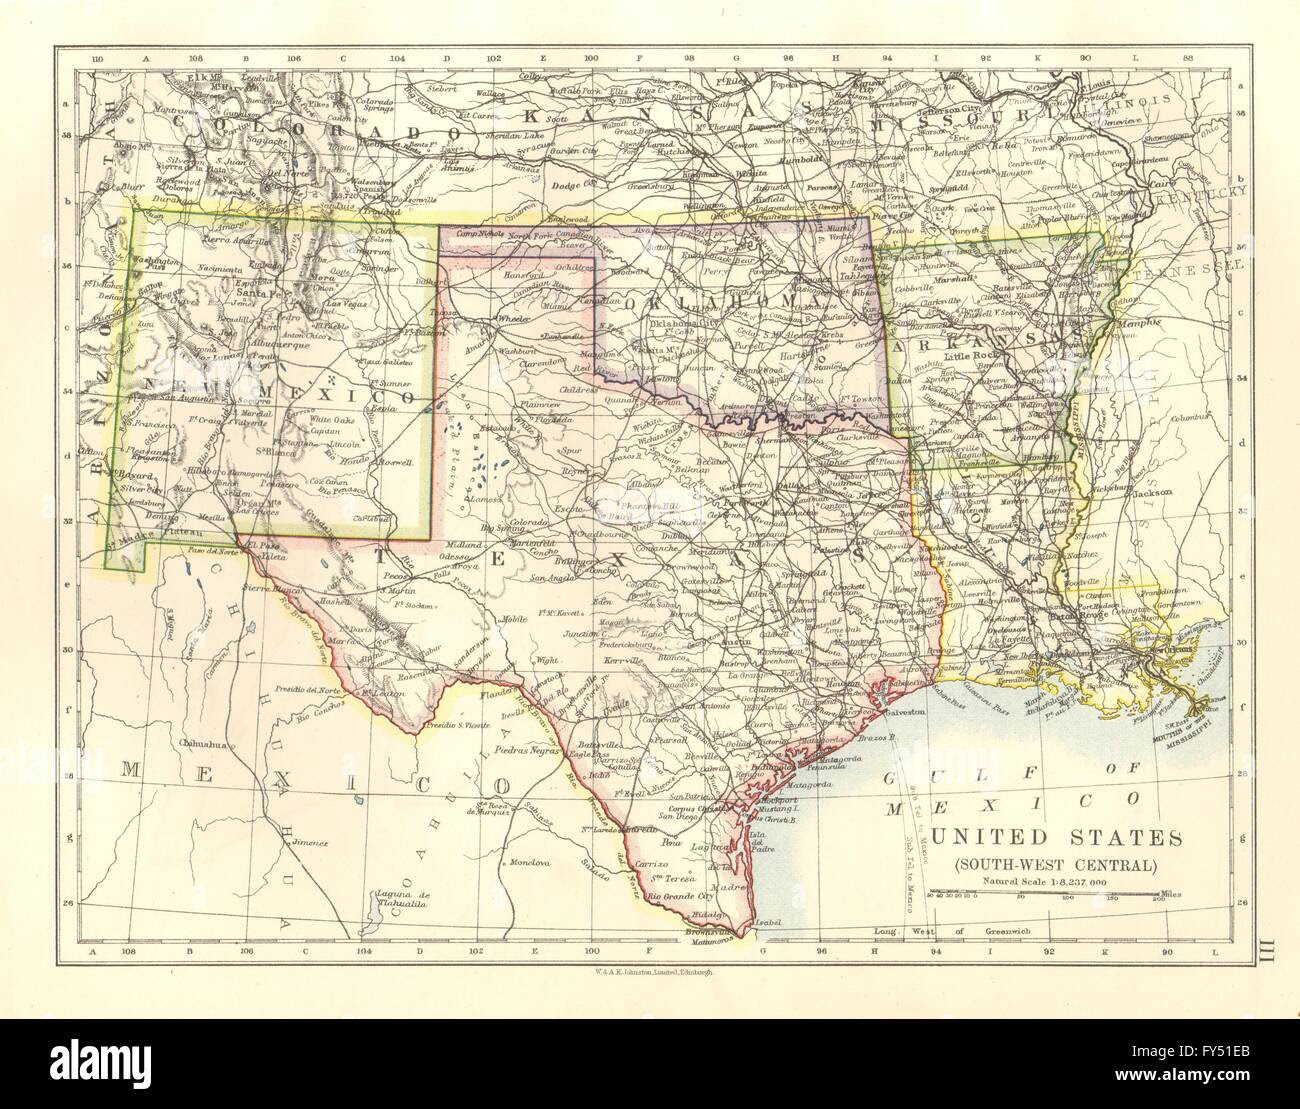 Map Of Texas And New Mexico Business Ideas 2013